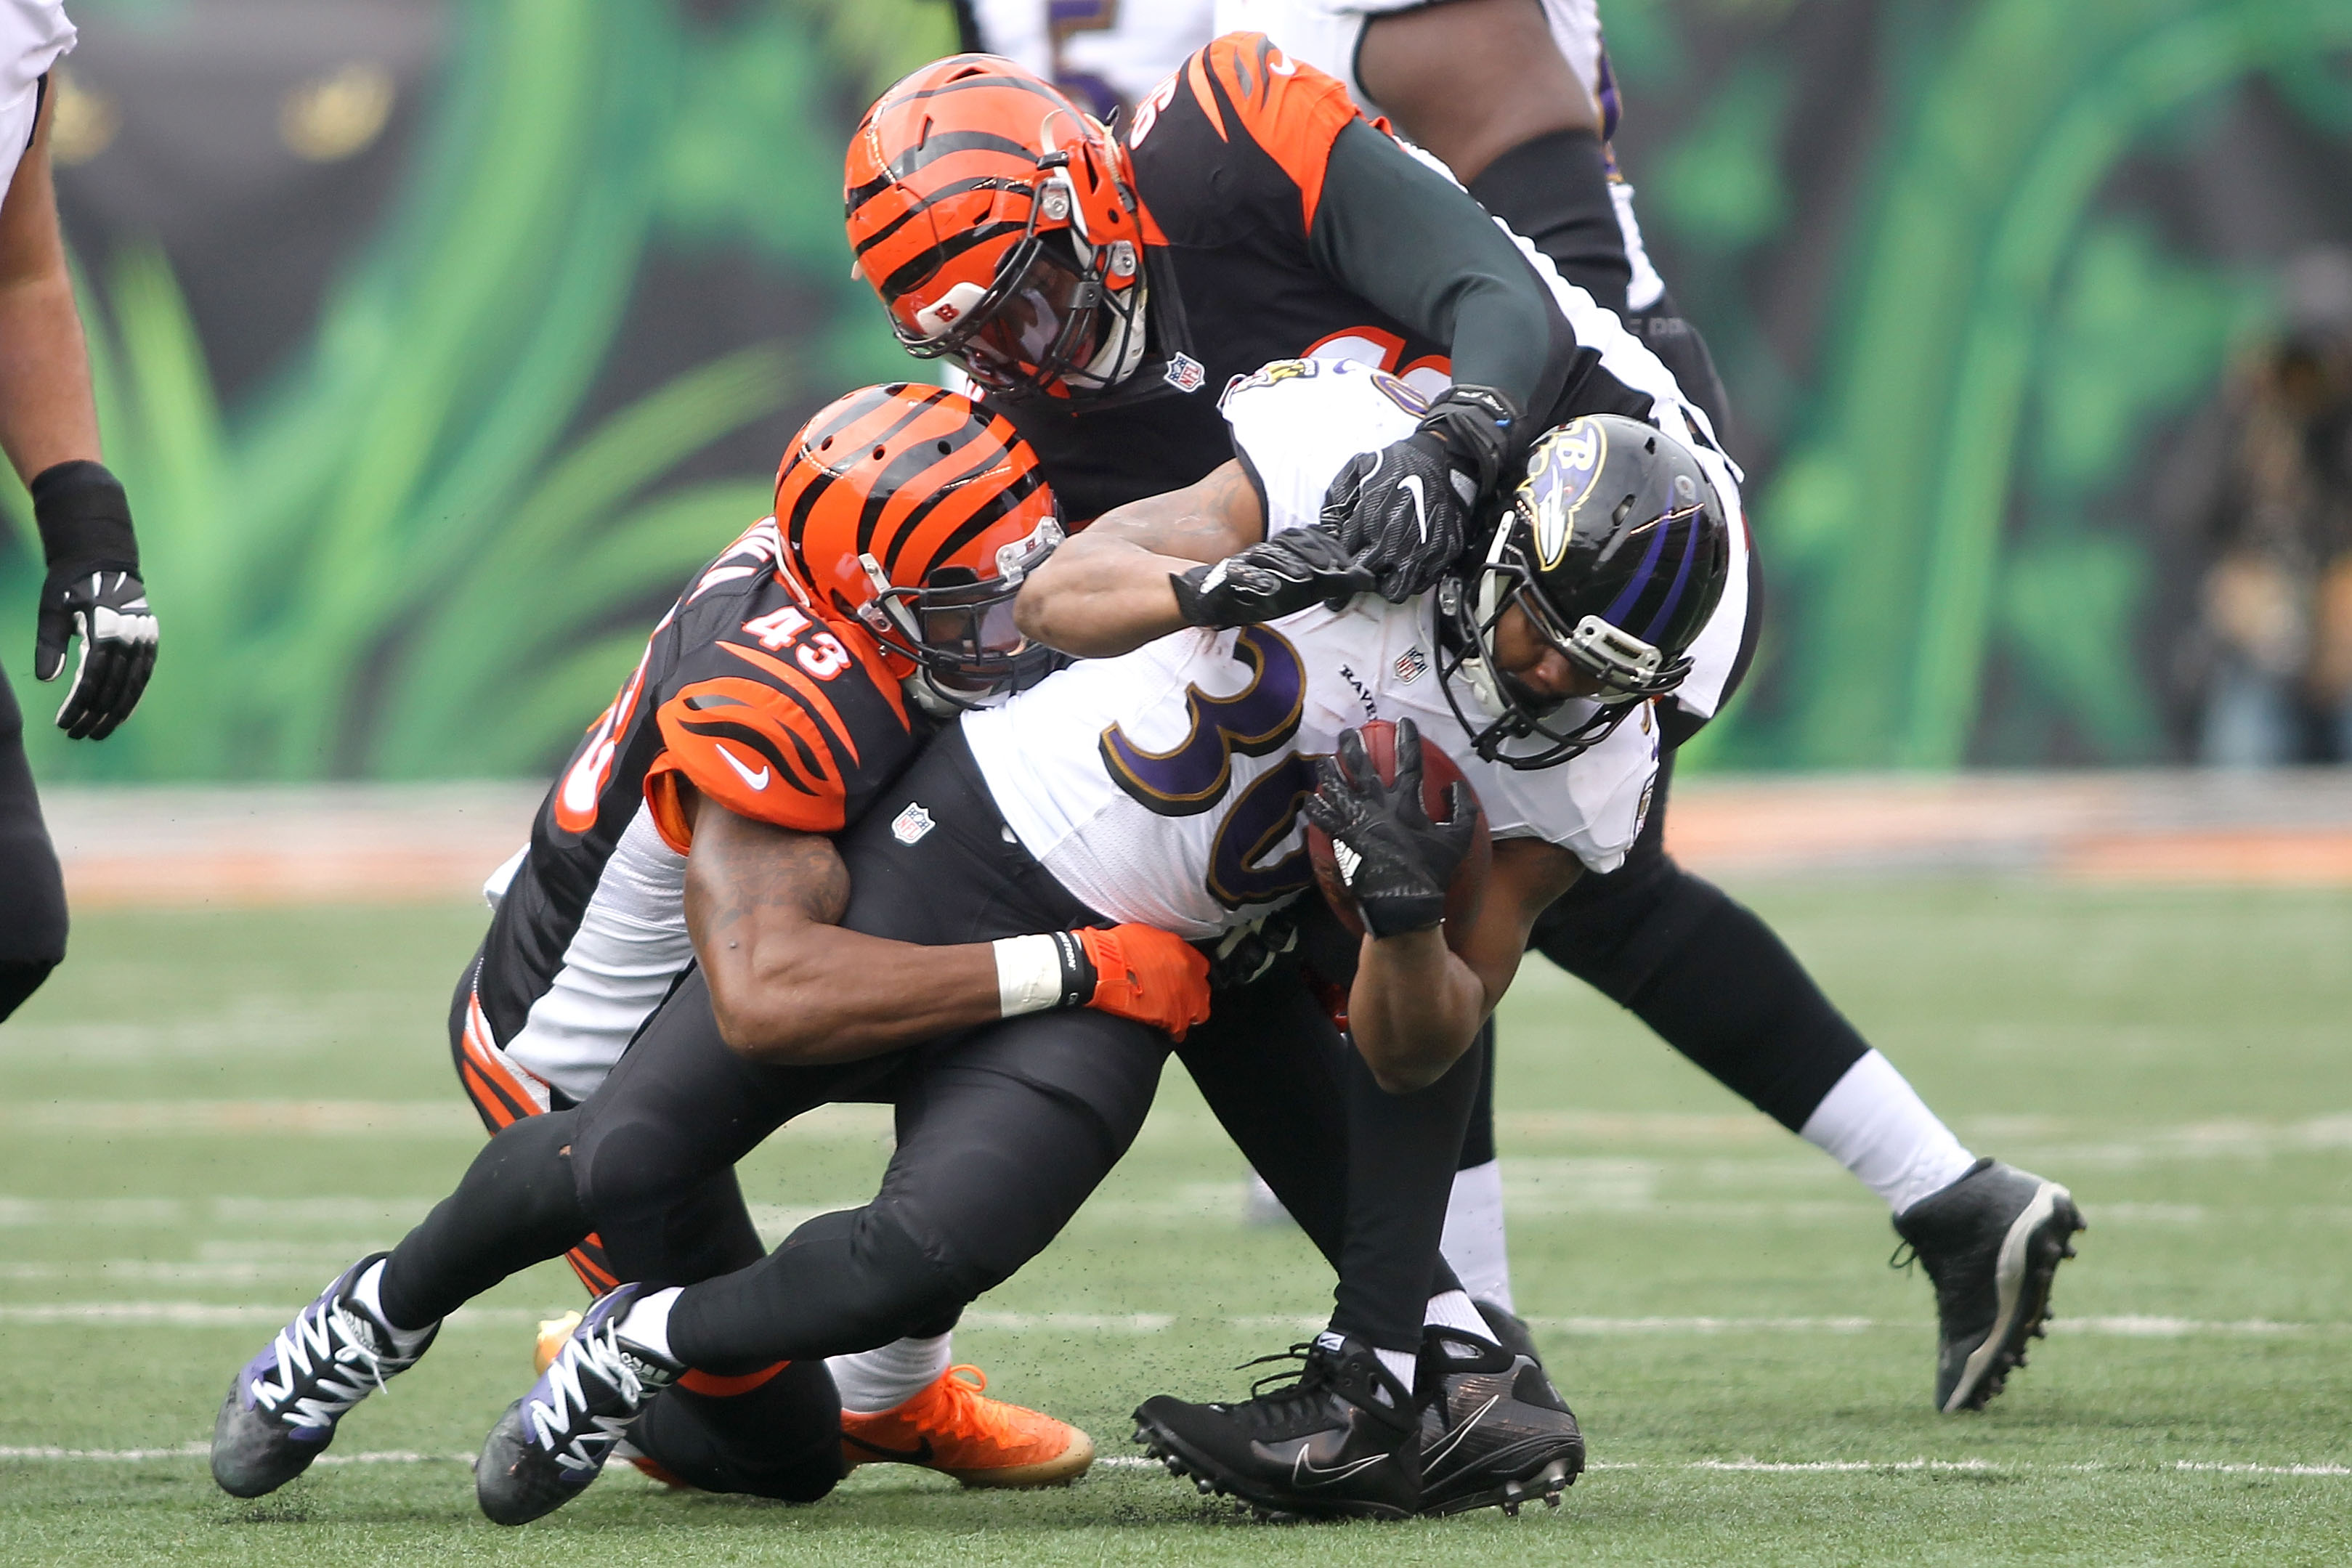 Ravens' Dixon could miss season with knee injury